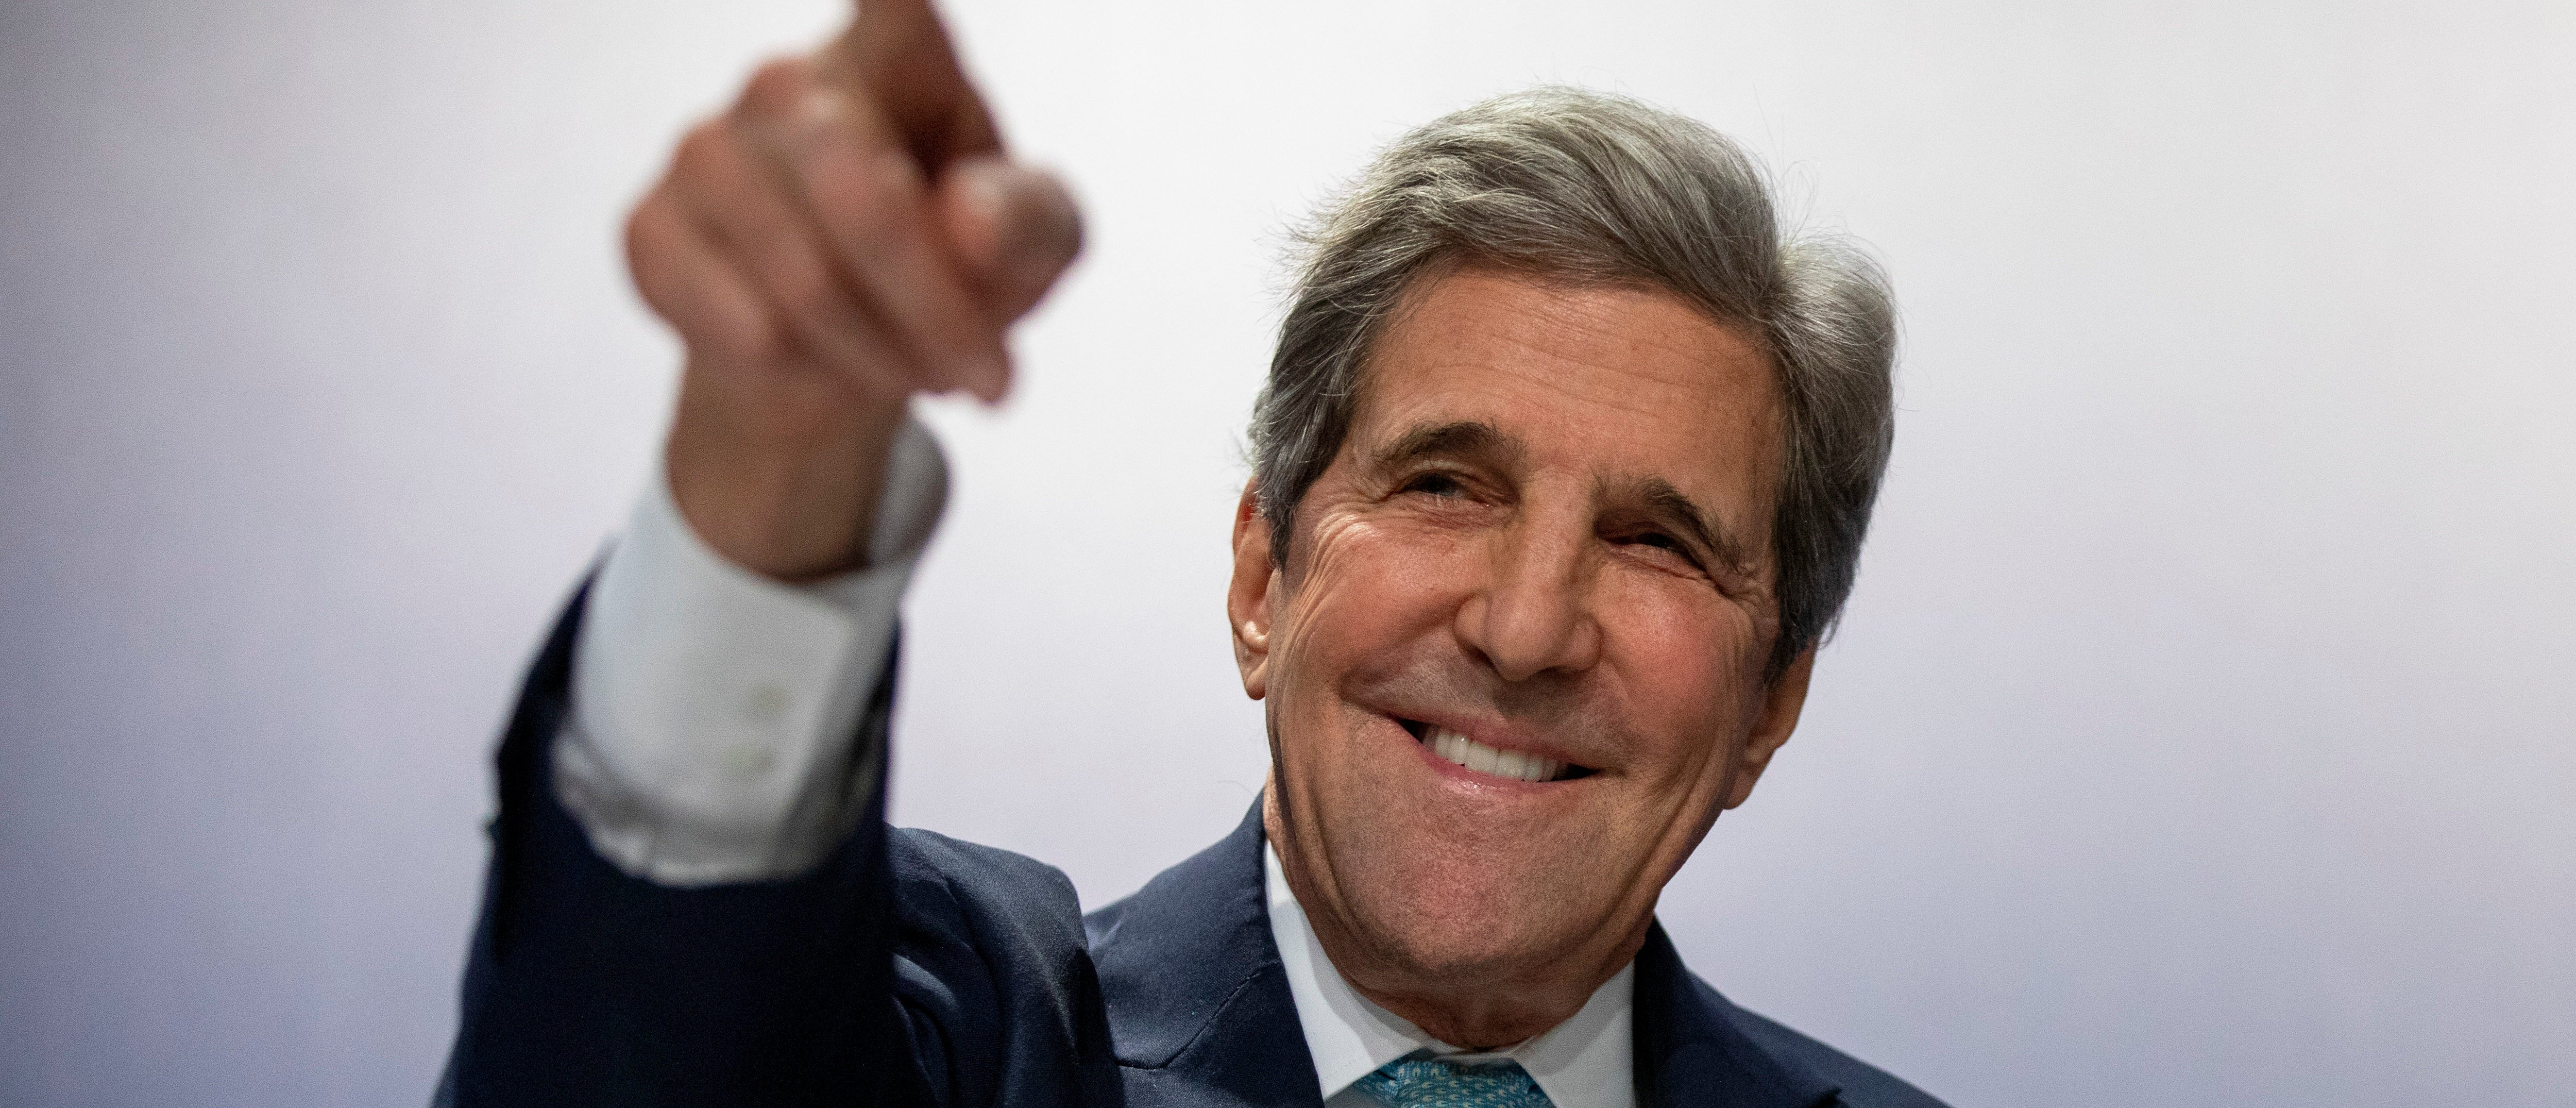 MADRID, SPAIN - DECEMBER 10: Former US Secretary of State John Kerry attends to a conference at the COP25 Climate Conference on December 10, 2019 in Madrid, Spain. The COP25 conference brings together world leaders, climate activists, NGOs, indigenous people and others for two weeks in an effort to focus global policy makers on concrete steps for heading off a further rise in global temperatures. (Photo by Pablo Blazquez Dominguez/Getty Images)